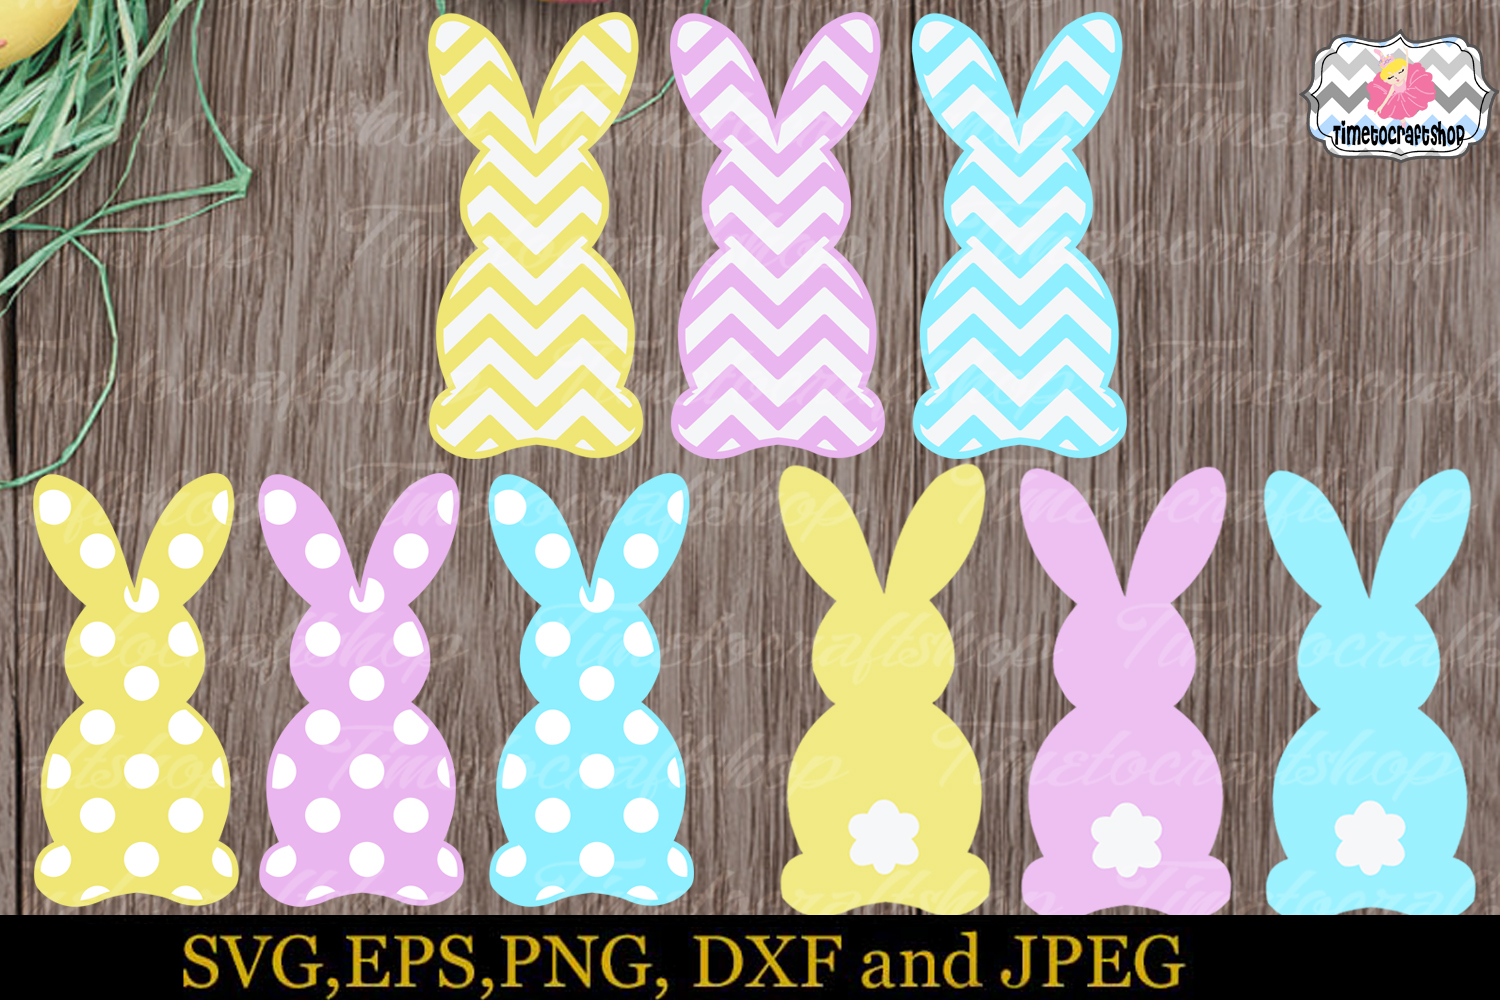 SVG, Eps, Dxf & Png Cutting Files For Easter Bunny example image 1